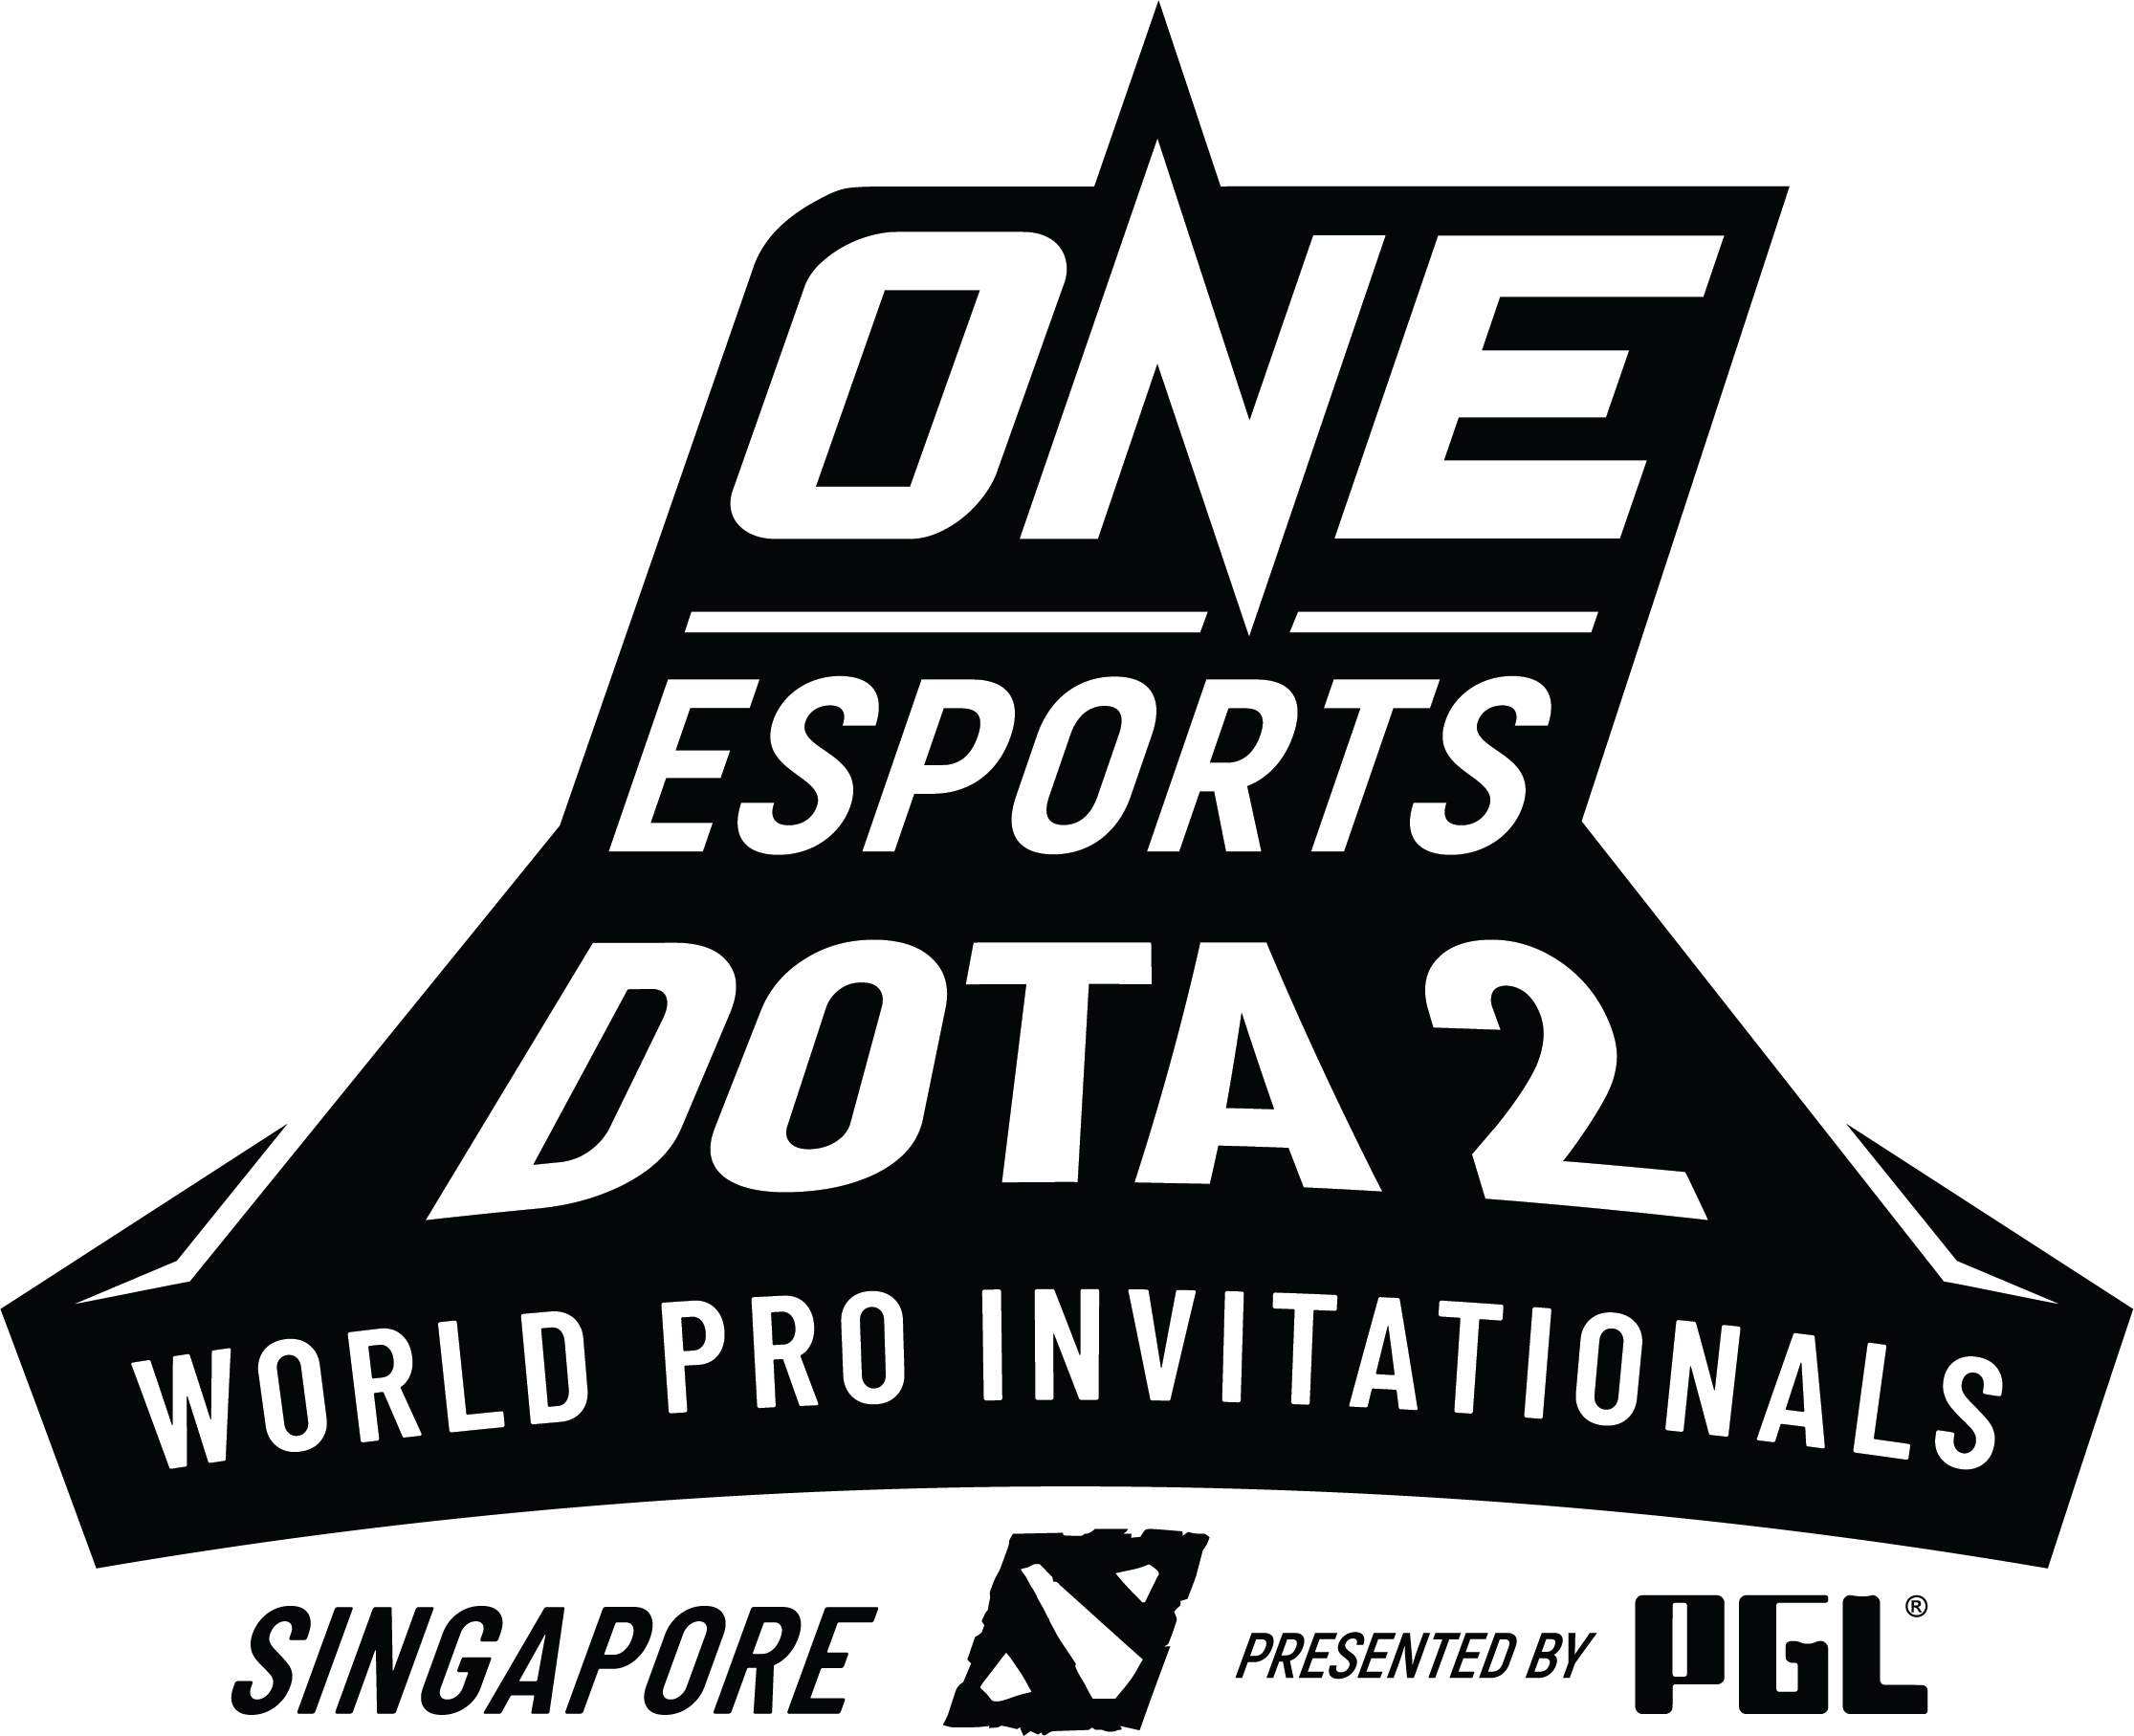 World Pro Invitational ONE Esports Dota 2 Tournament